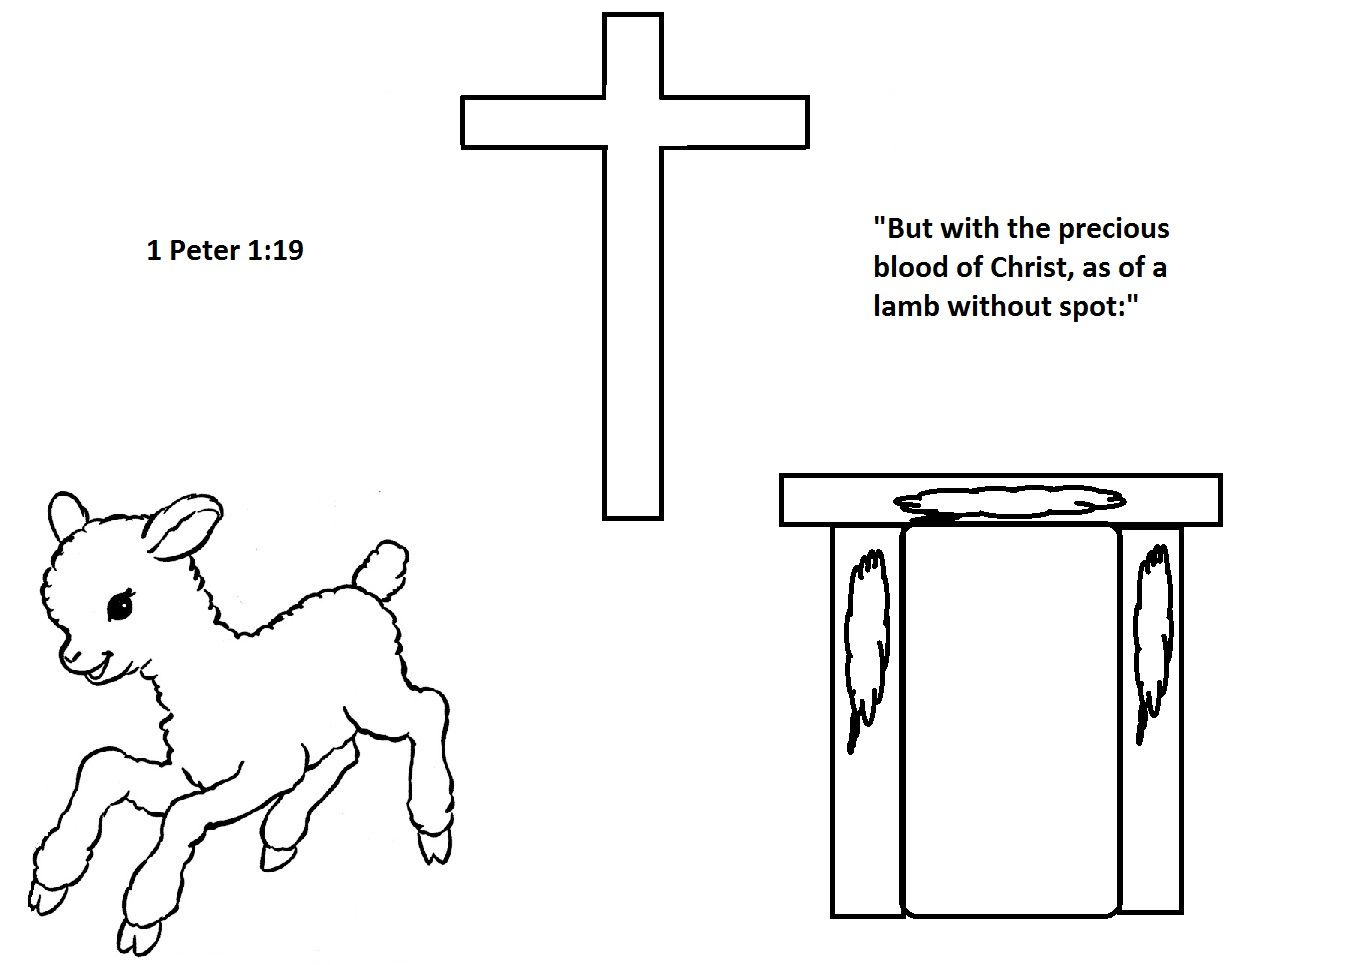 A Coloring Page I Created To Reinforce The Passover Account Paralleling The Lamb To Jesus Sacrifice For U Bible For Kids Bible Coloring Pages Passover Crafts [ 965 x 1360 Pixel ]